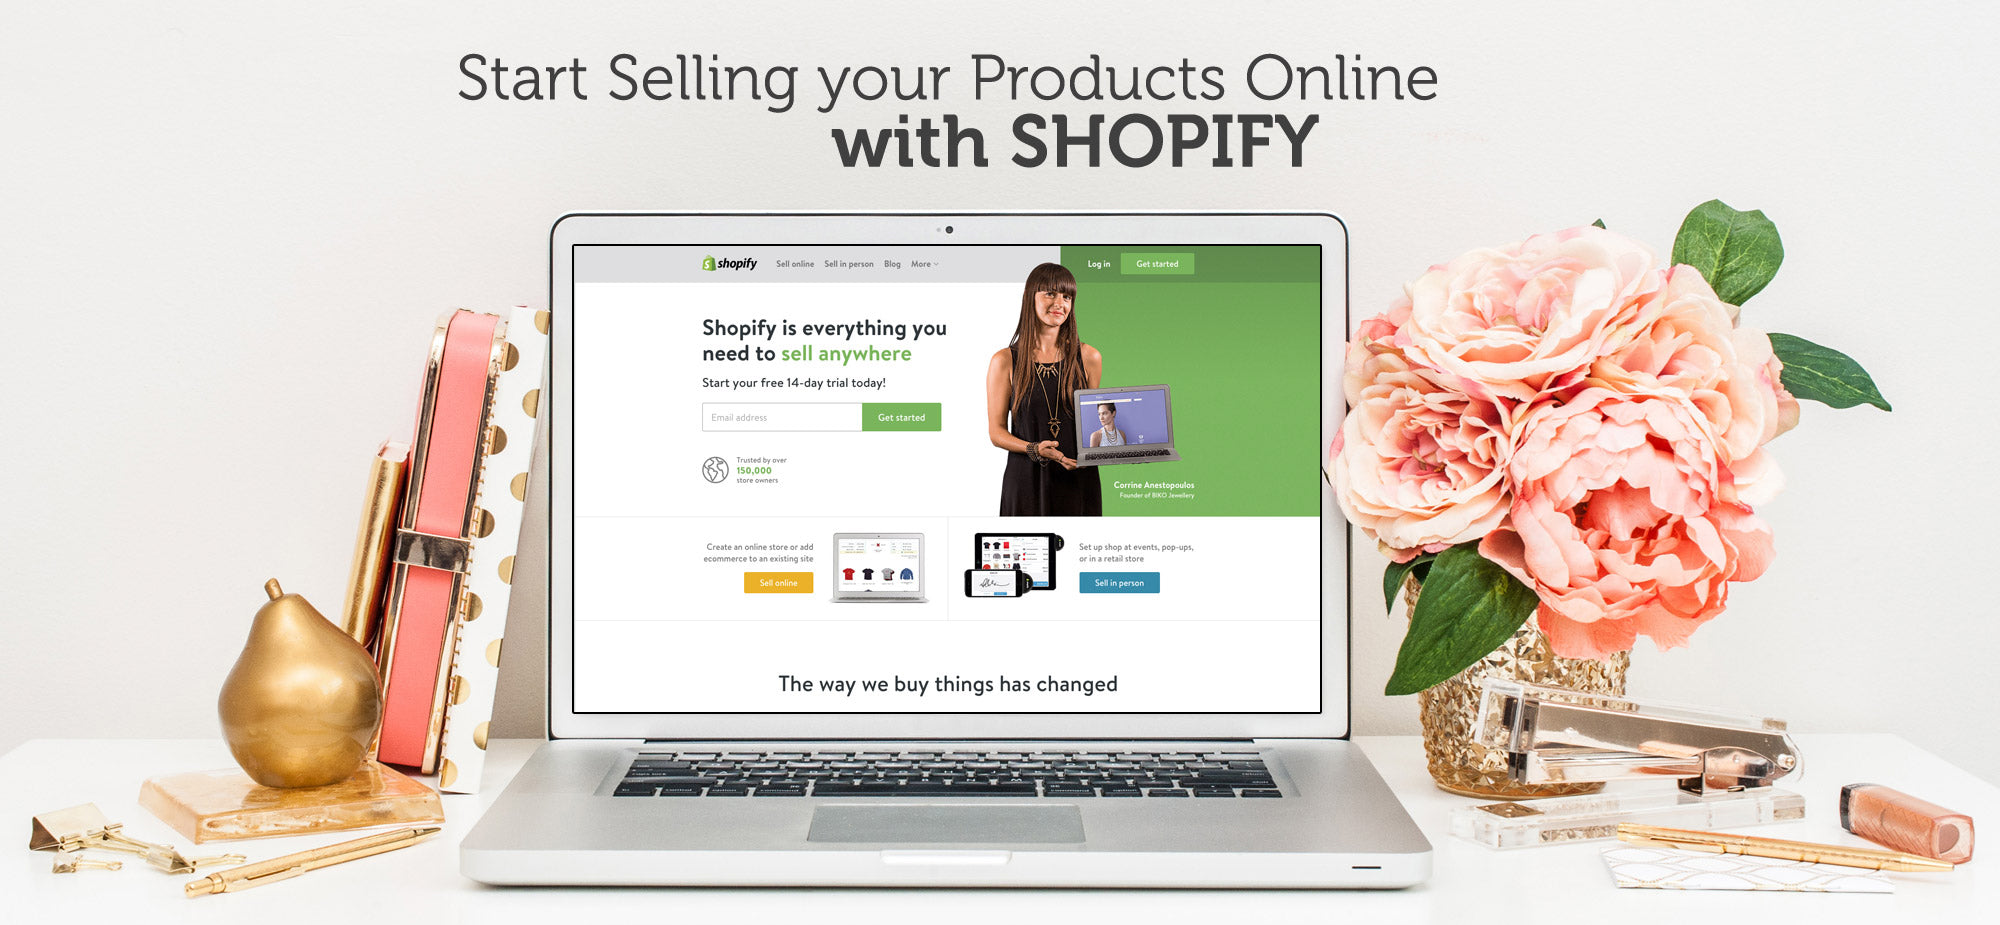 Start Selling Your Products Online with Shopify and Curious Themes